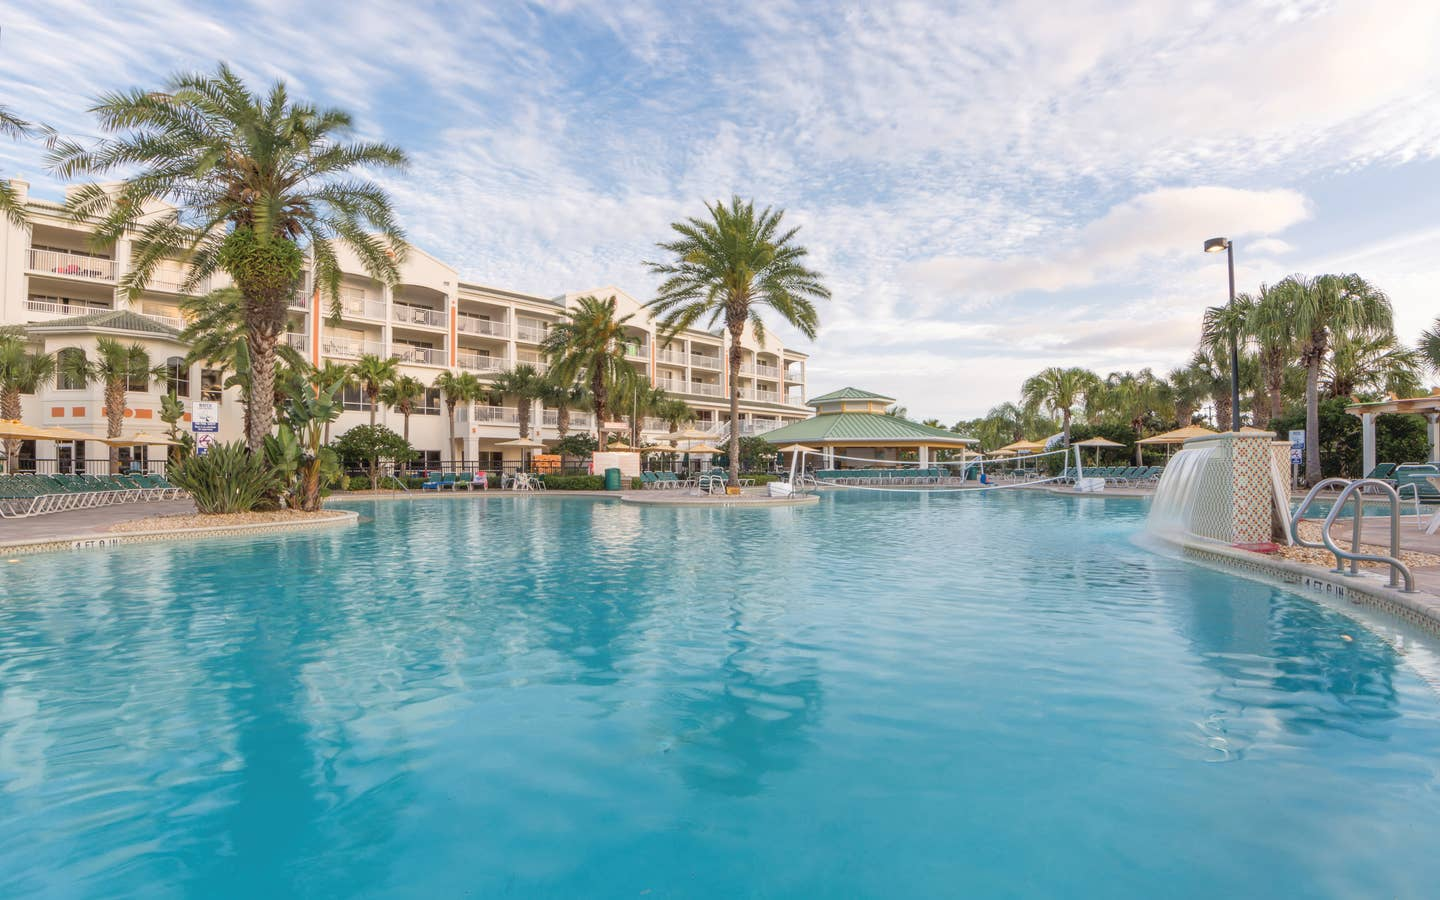 Outdoor pool with waterfall, volleyball net, beach chairs, and umbrellas at Cape Canaveral Beach Resort.